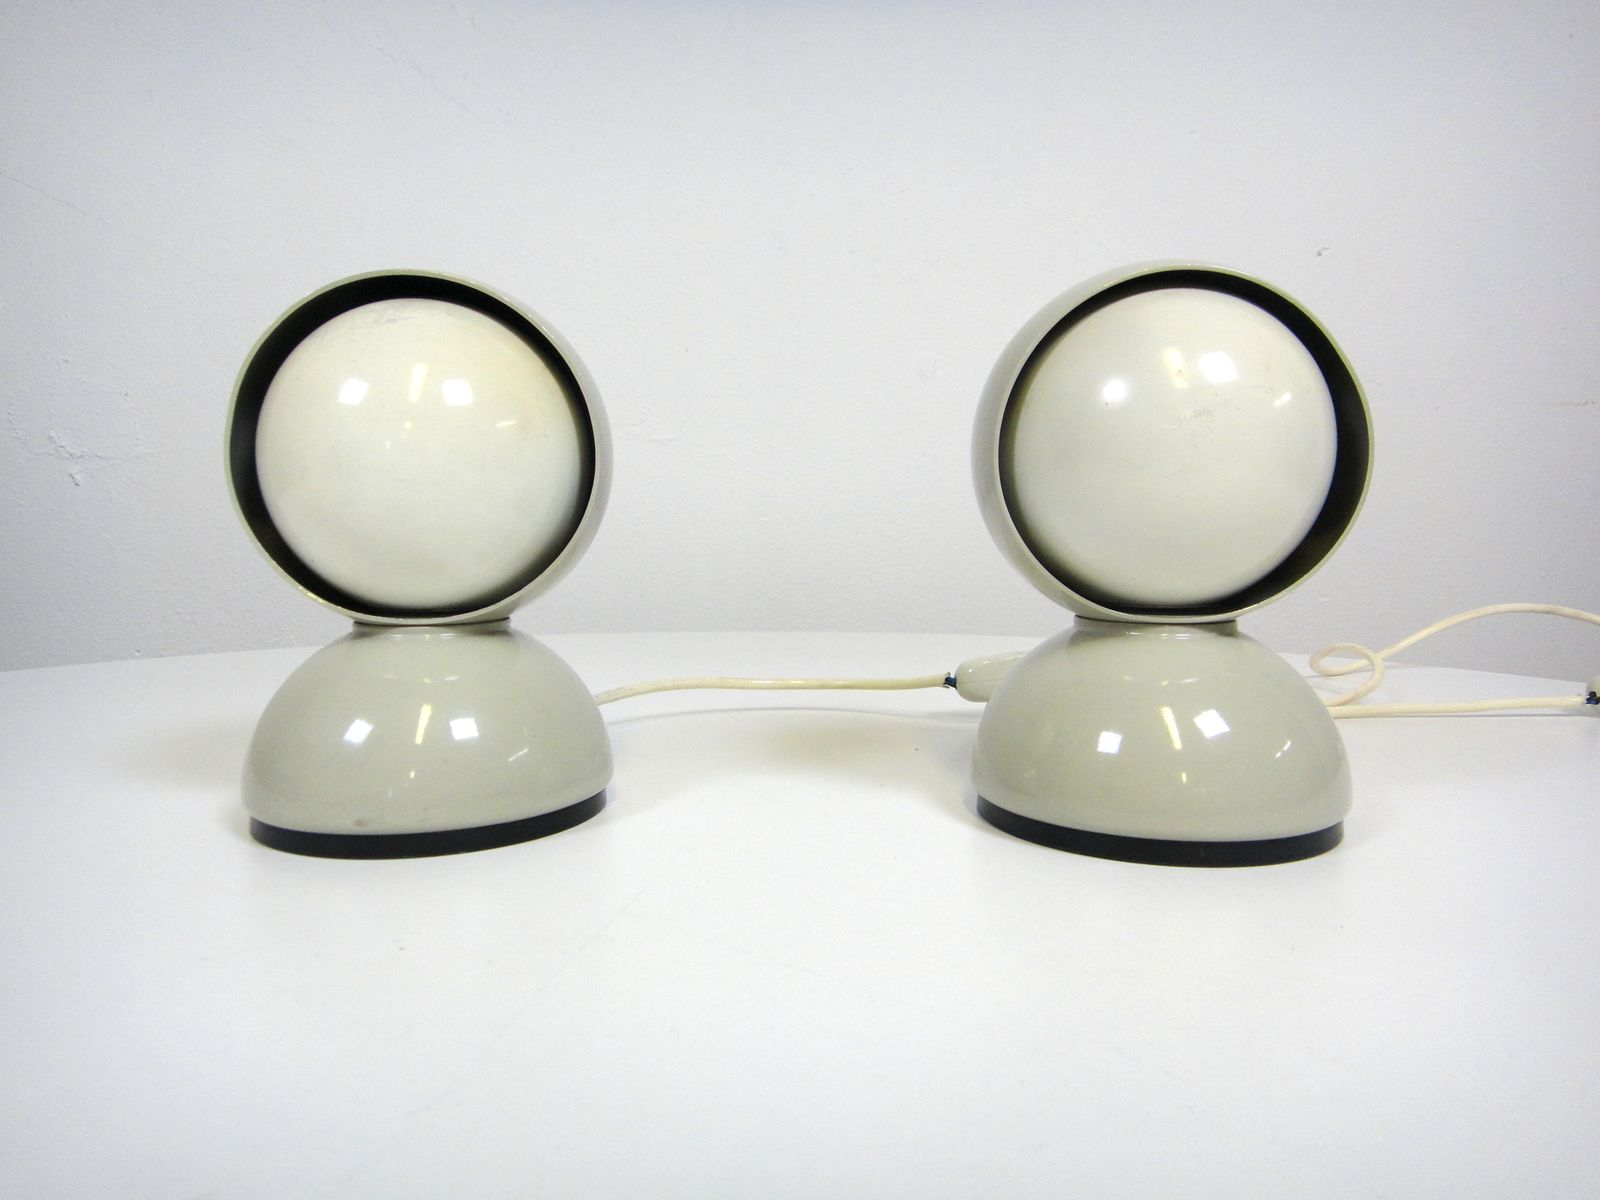 Eclisse Table Lamps by Vico Magistretti for Artemide, 1970s, Set of 2